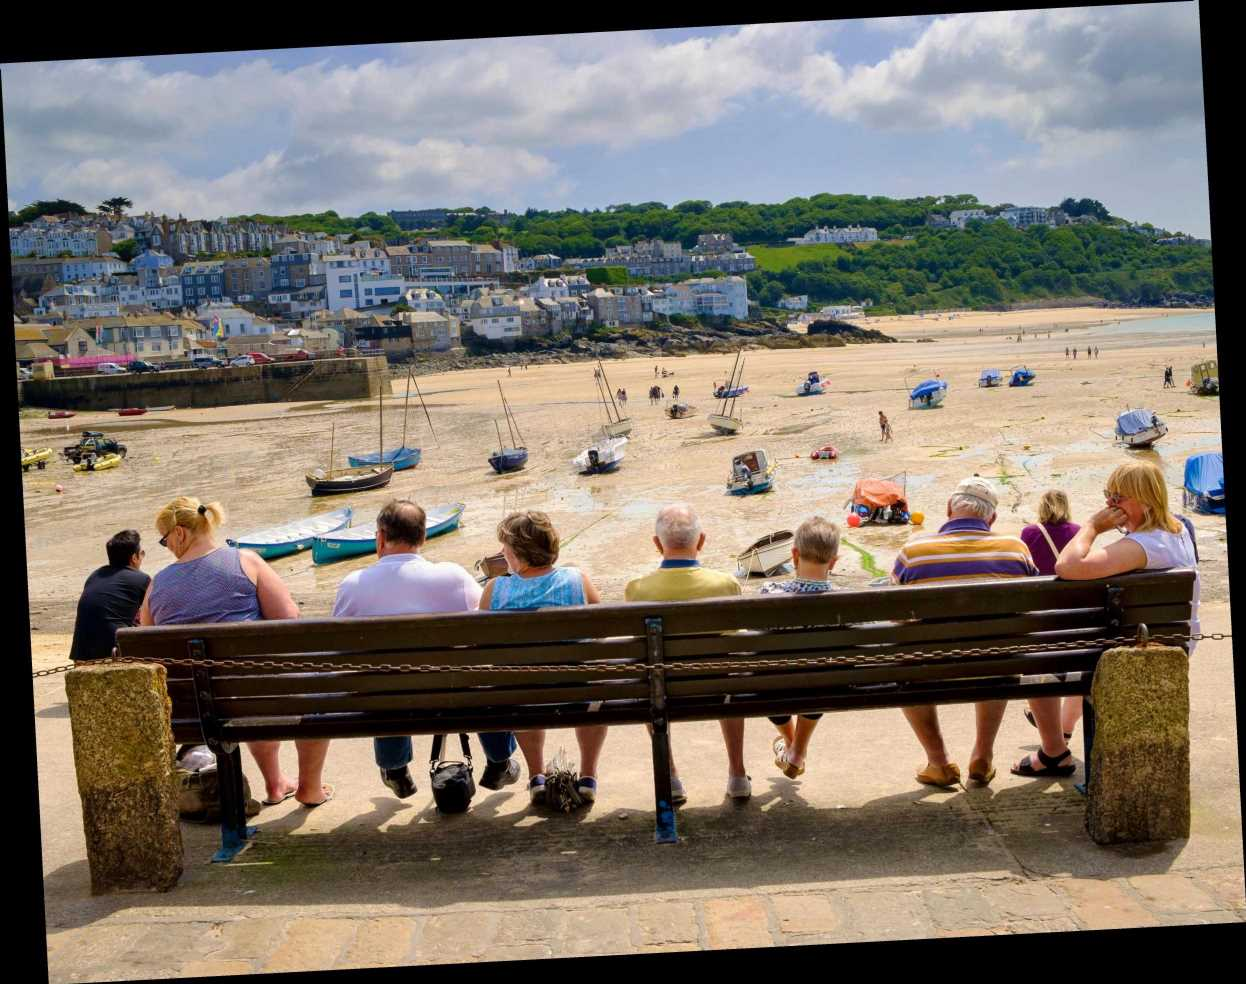 Cornwall, Jersey & Suffolk top list of UK holiday spots Brits want to visit post-lockdown – with deals from £25 a night